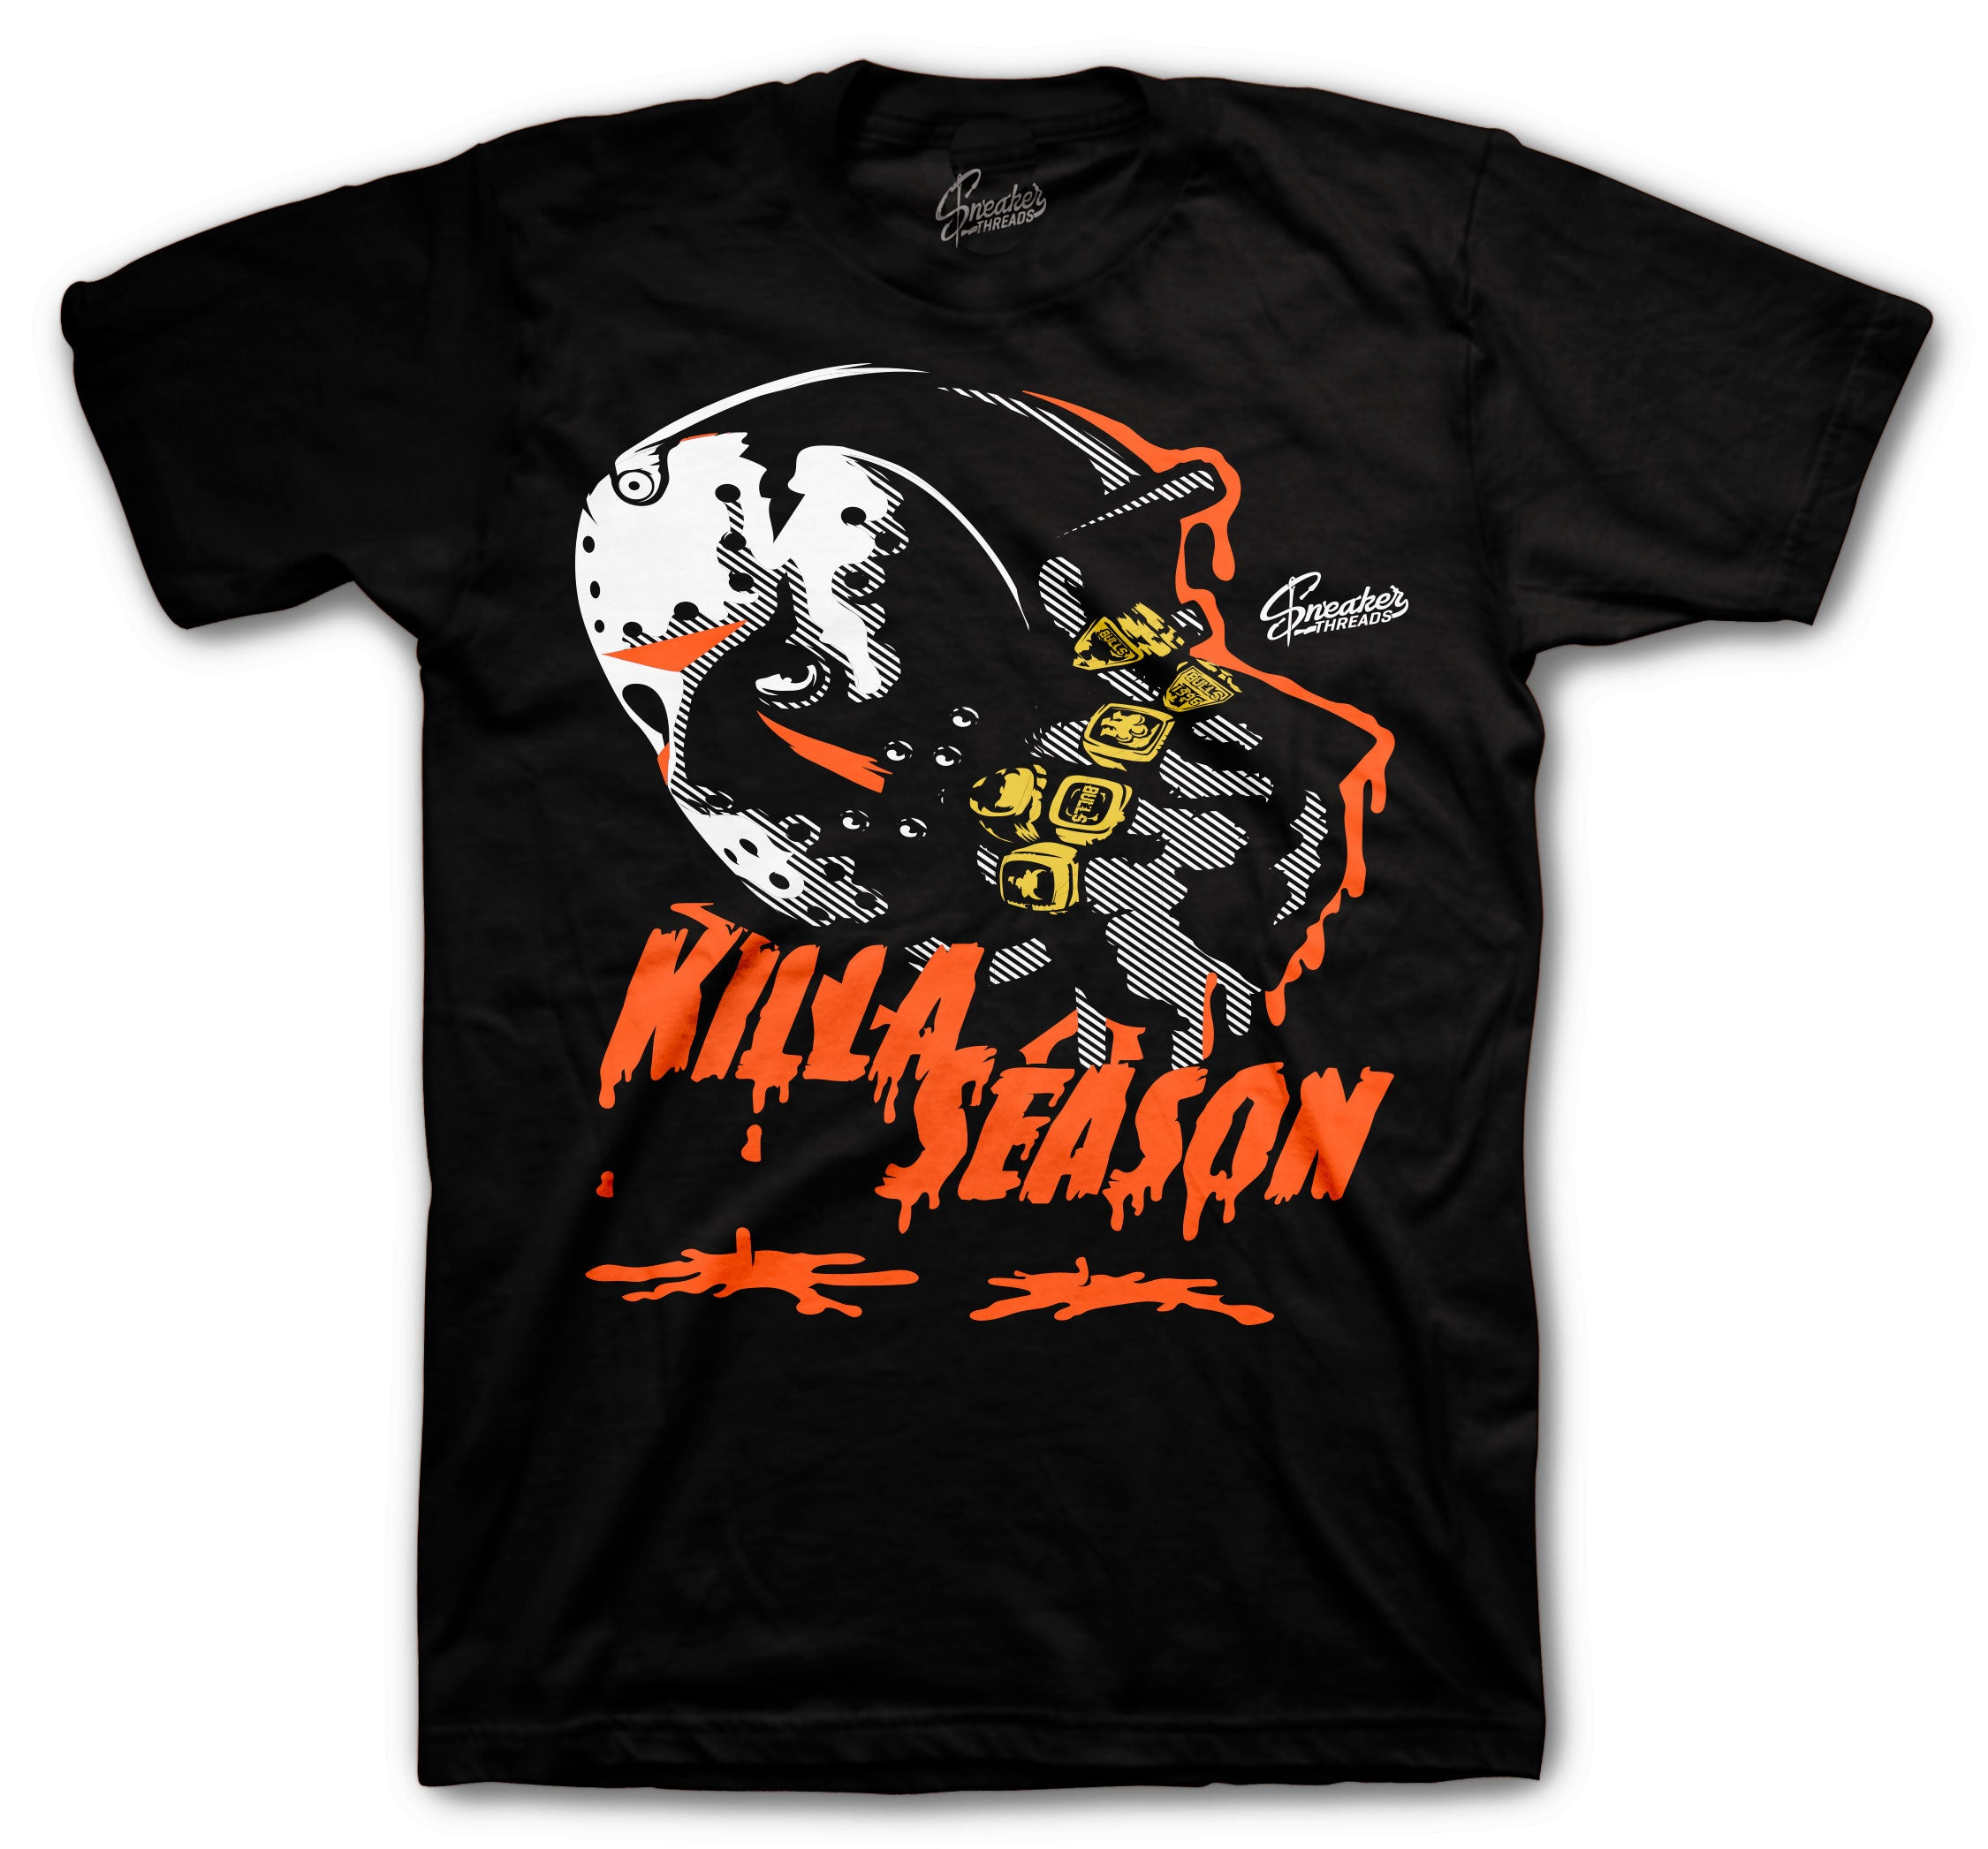 Foams shattered backboard Killer shirts for halloween